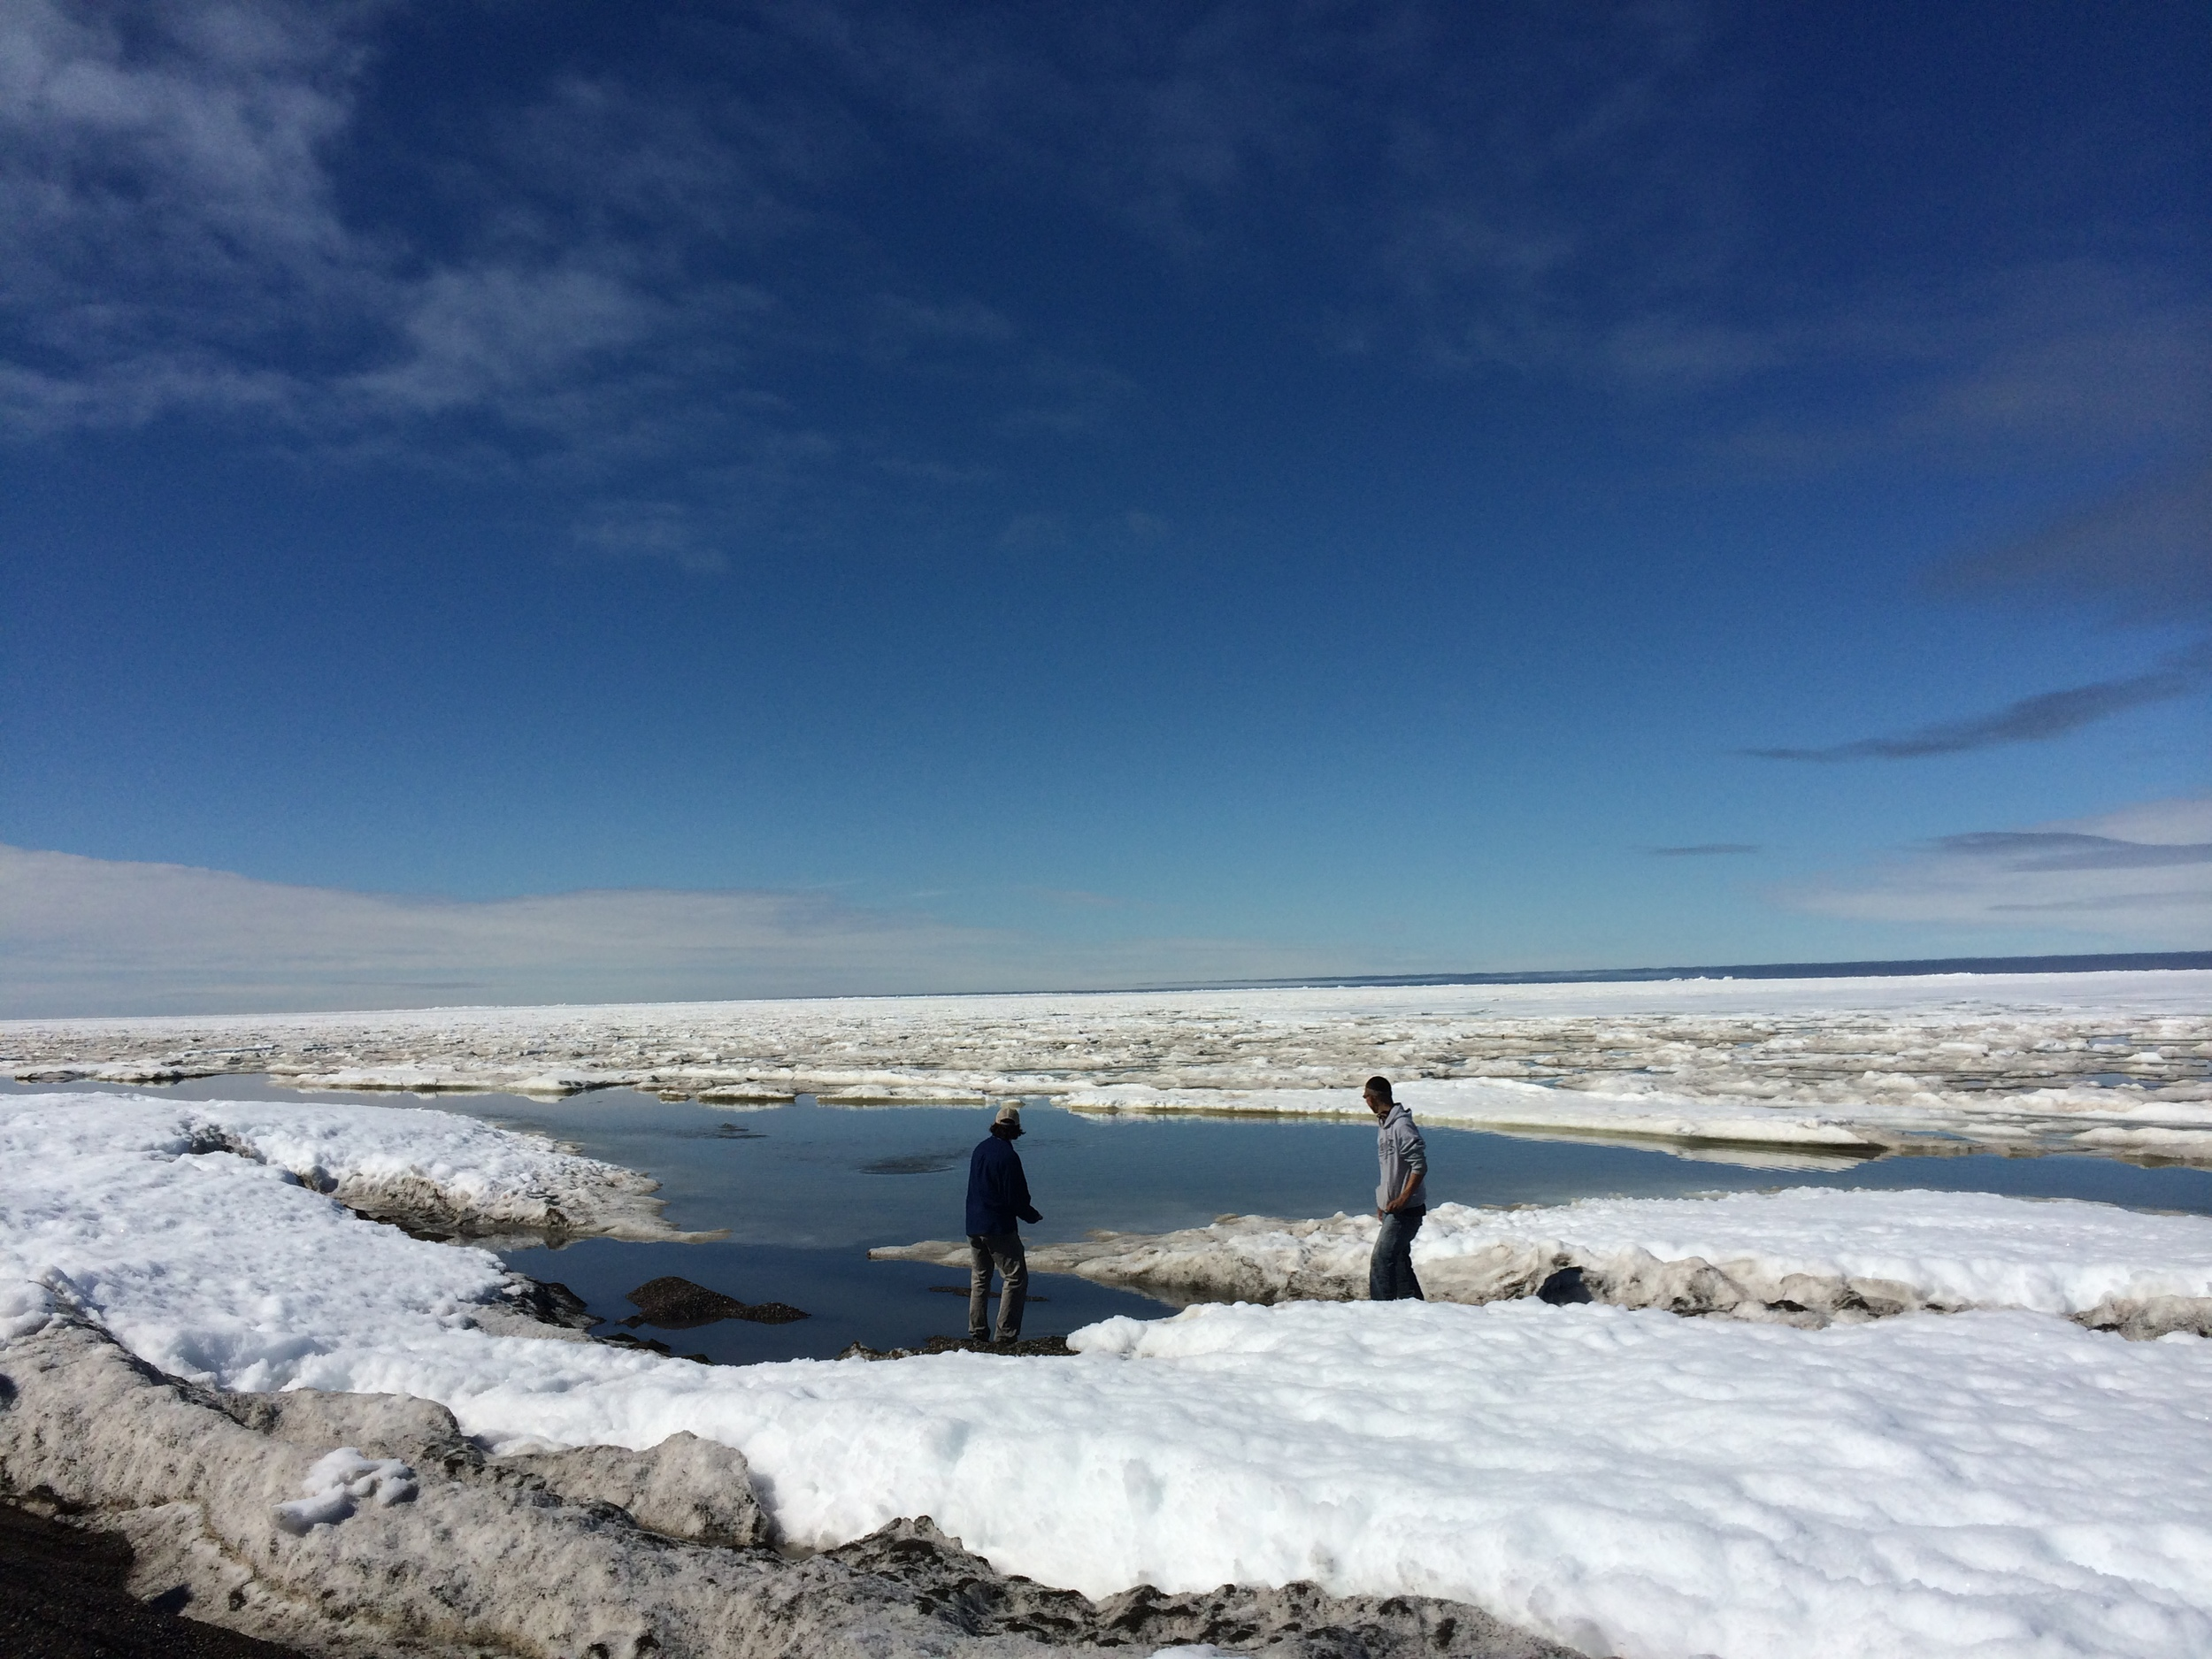 Nick and Anu skipping stones from the sea ice.